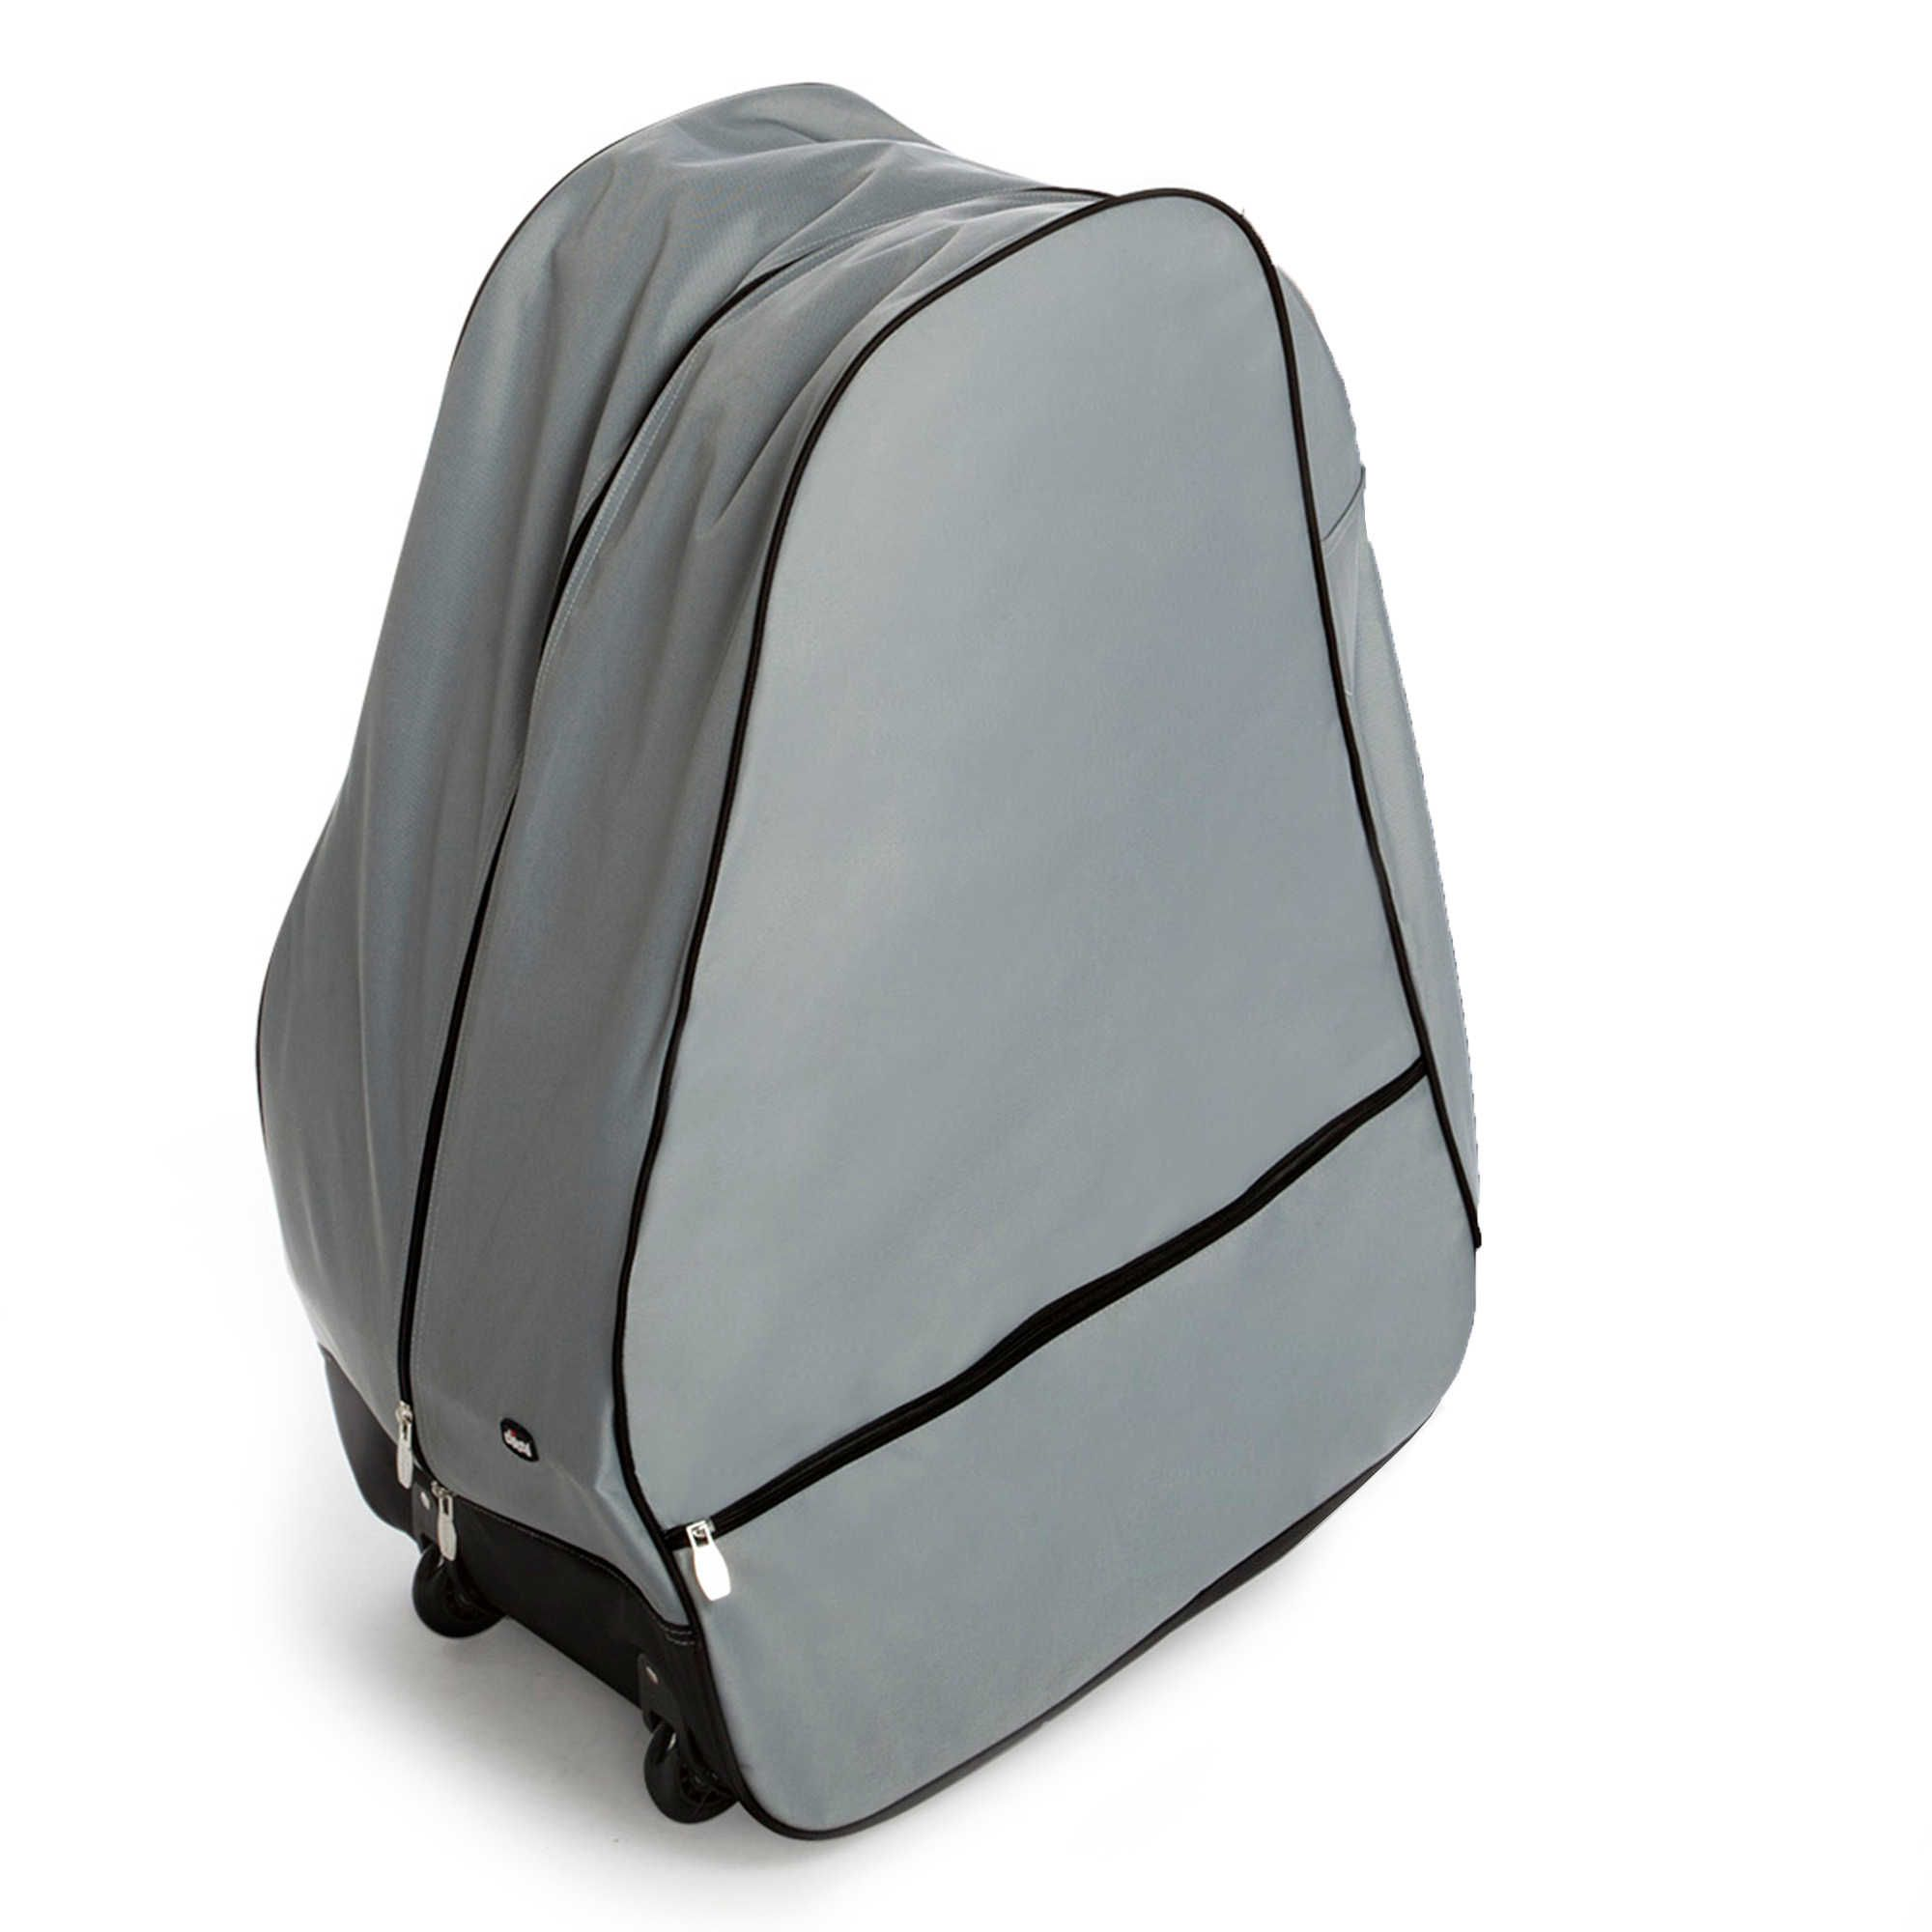 ChiccoR Universal Car Seat Travel Bag With Wheels In Grey